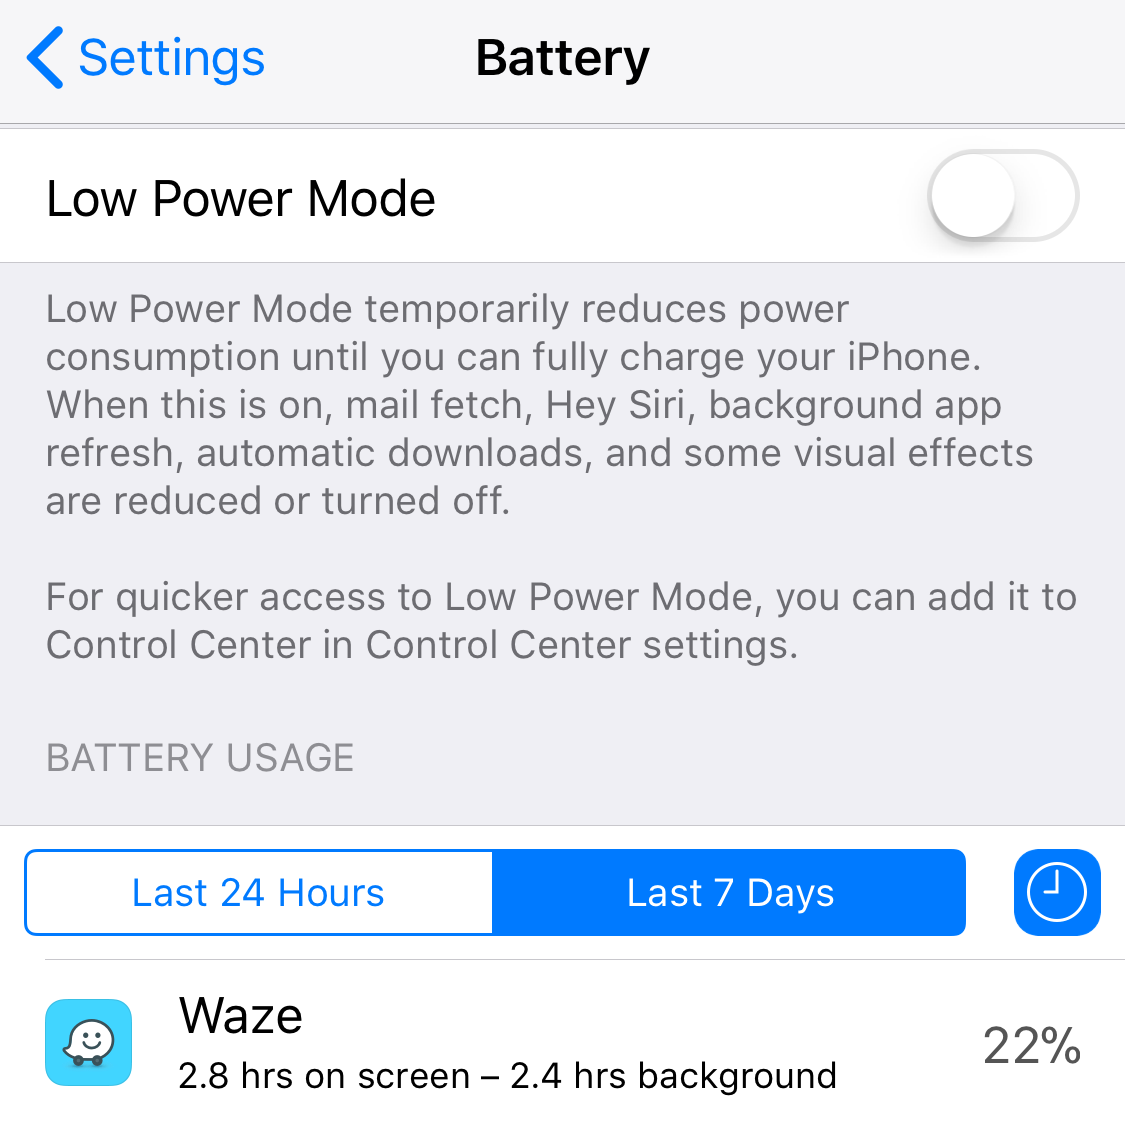 """To see your screen usage, go to Setting>Battery and scroll down to """"Battery Usage"""". Select """"Last 7 Days"""" and click the little clock icon to display how many active hours you've used in various apps over the last week"""